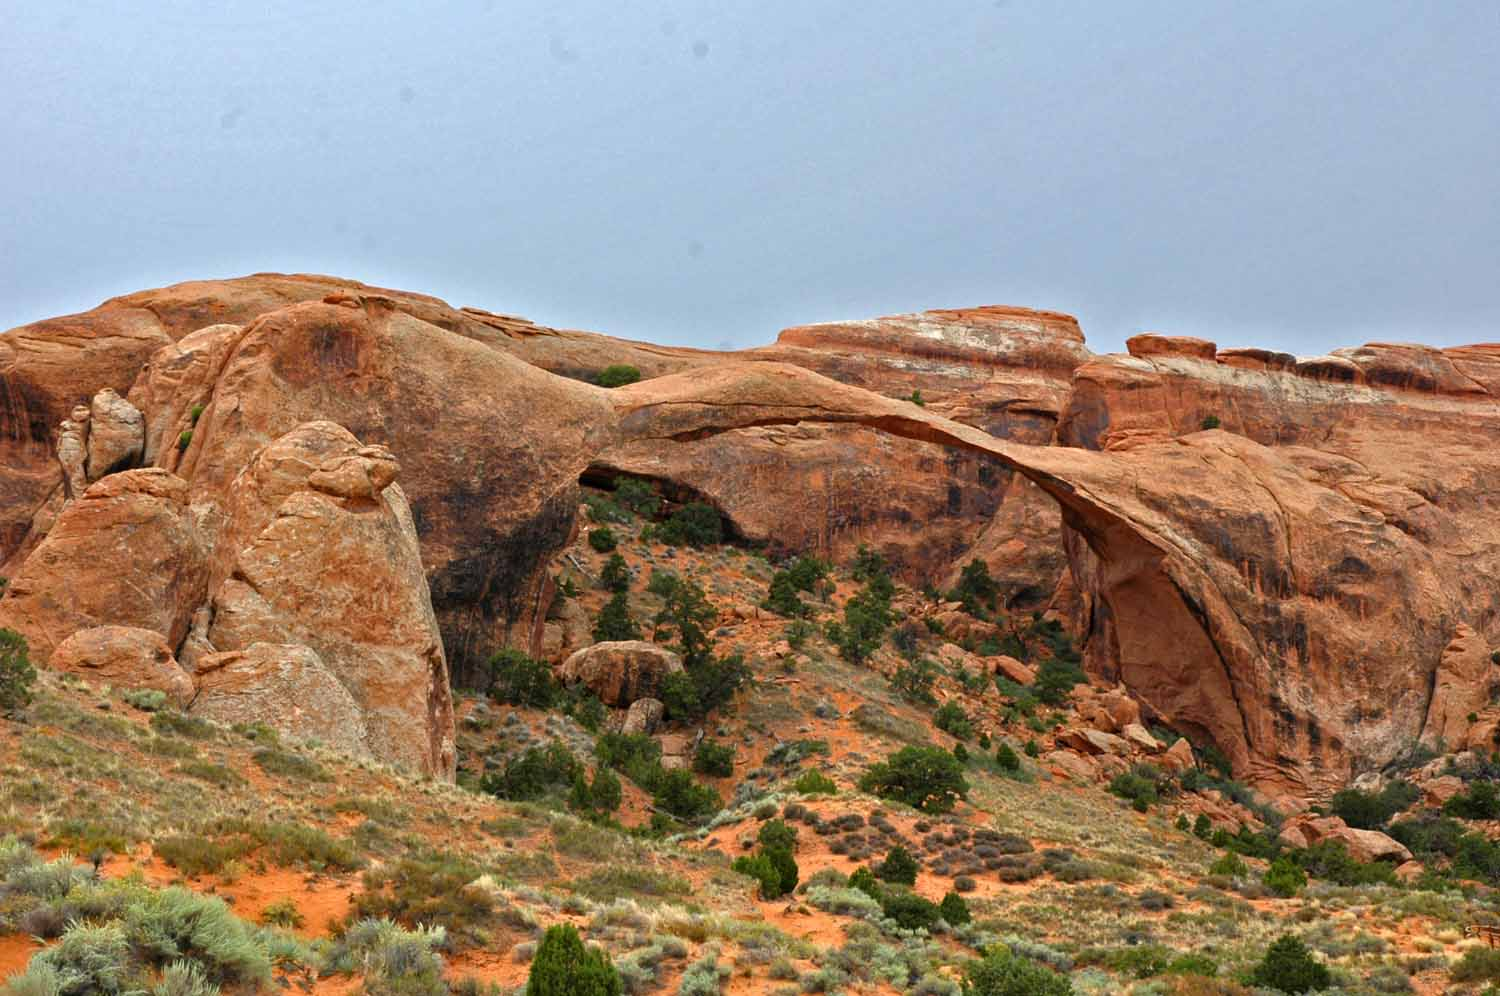 Devils Garden - Interesting arch...